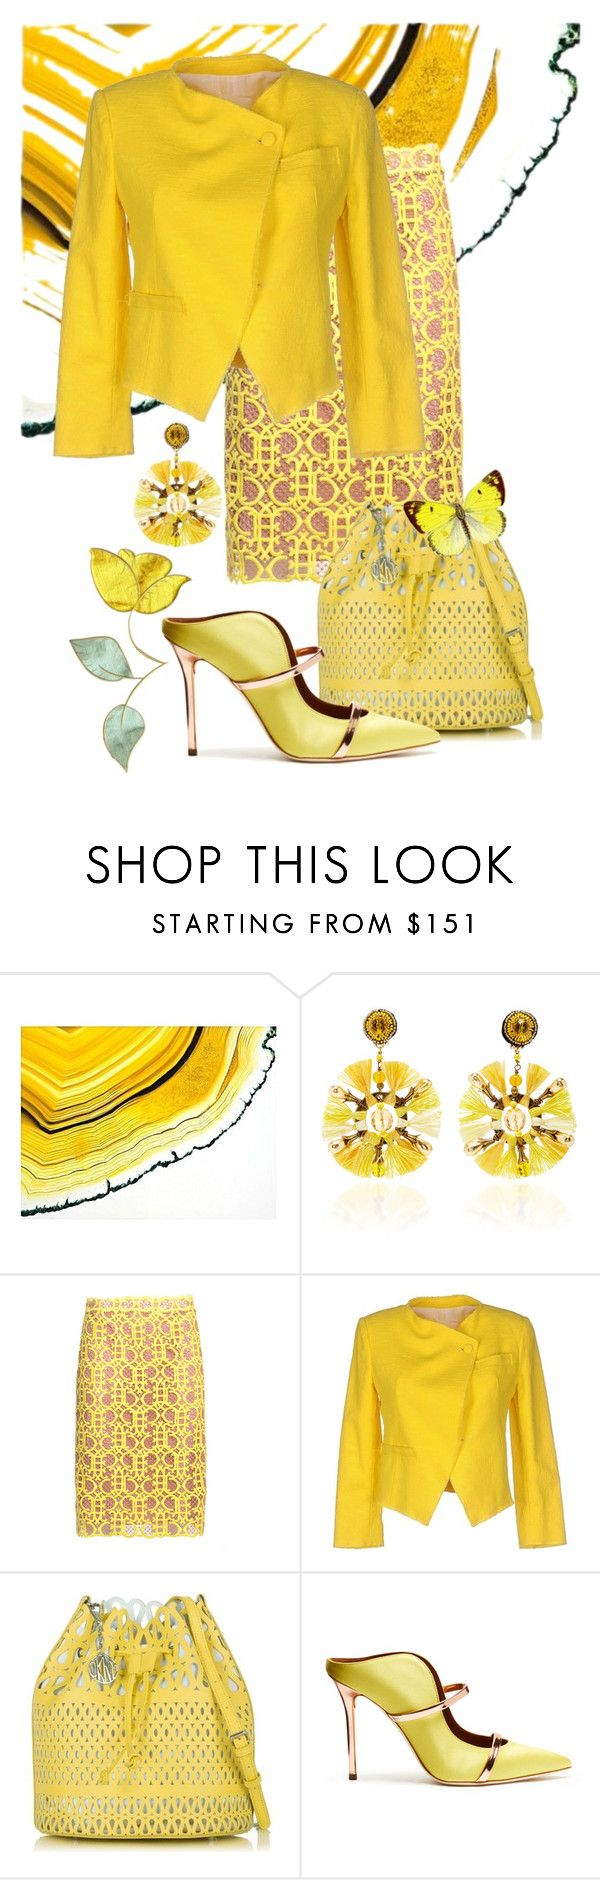 """Untitled #1702"" by sunnydays4everkh ❤ liked on Polyvore featuring Ranjana Khan, Emilio Pucci, Band of Outsiders, DKNY and Malone Souliers"